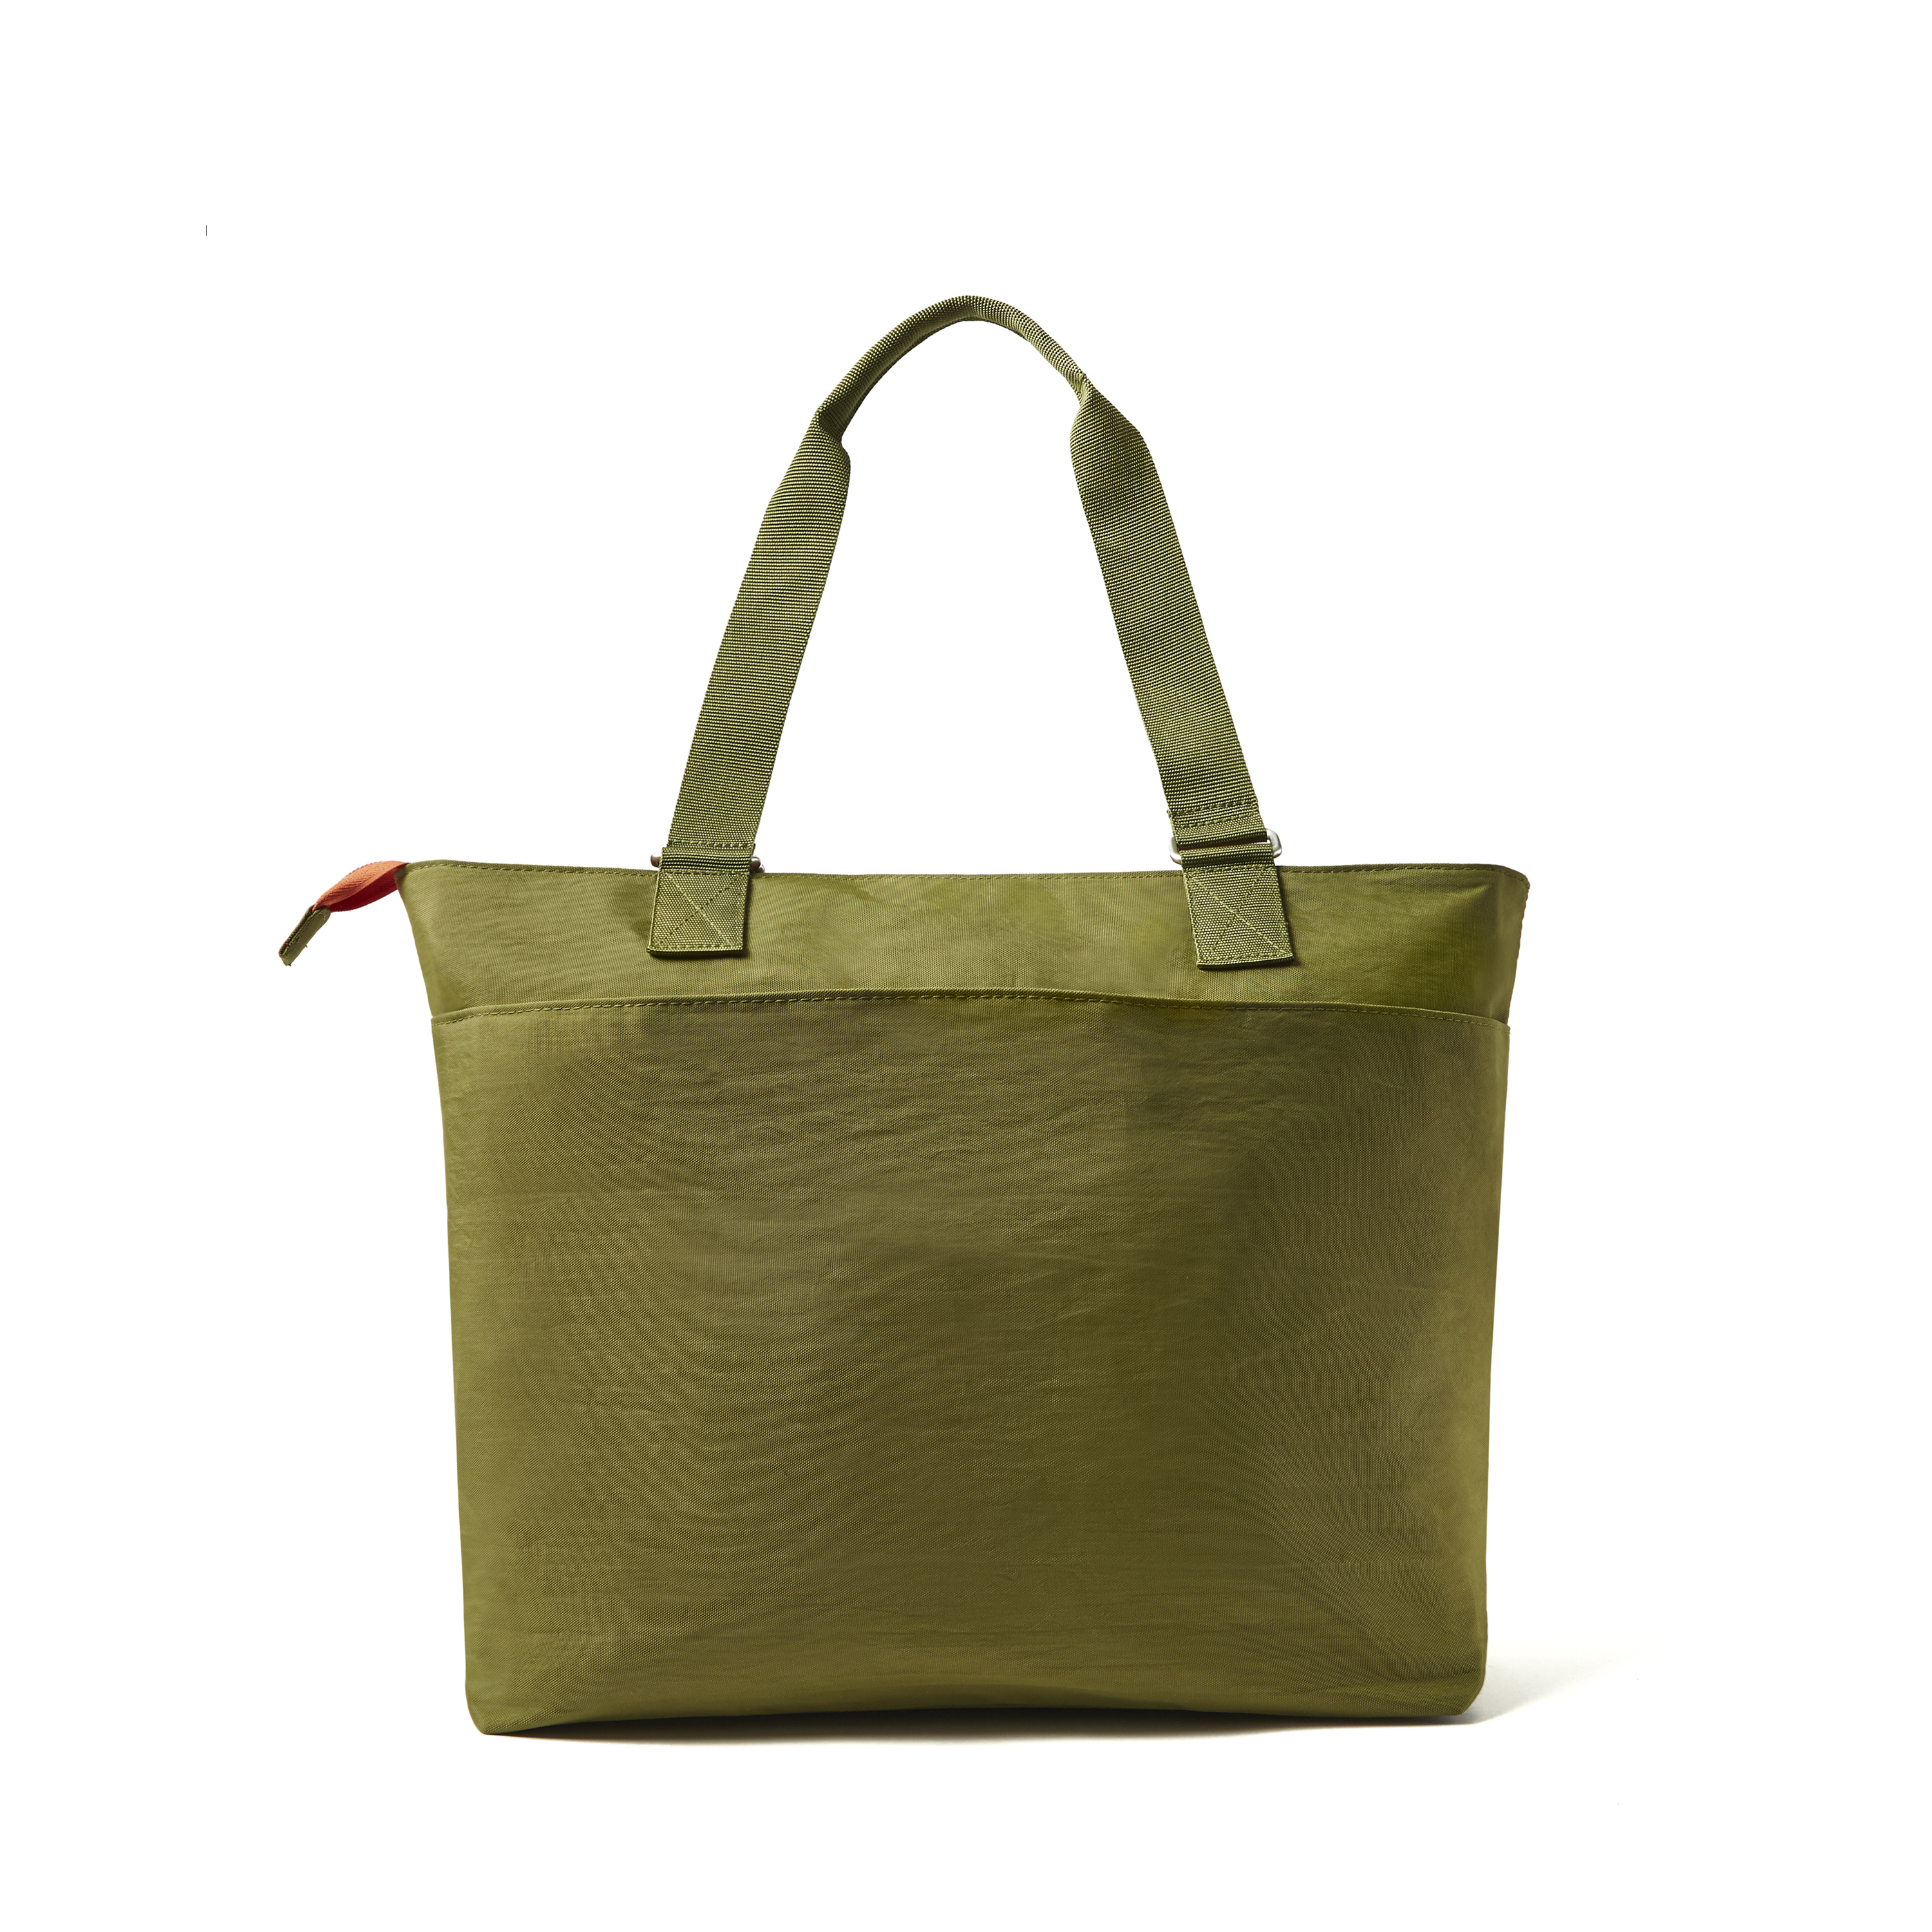 baggallini-Women-039-s-Multicolored-Tote-Shoulder-Handbag-Nylon-Multiple-Colors thumbnail 8